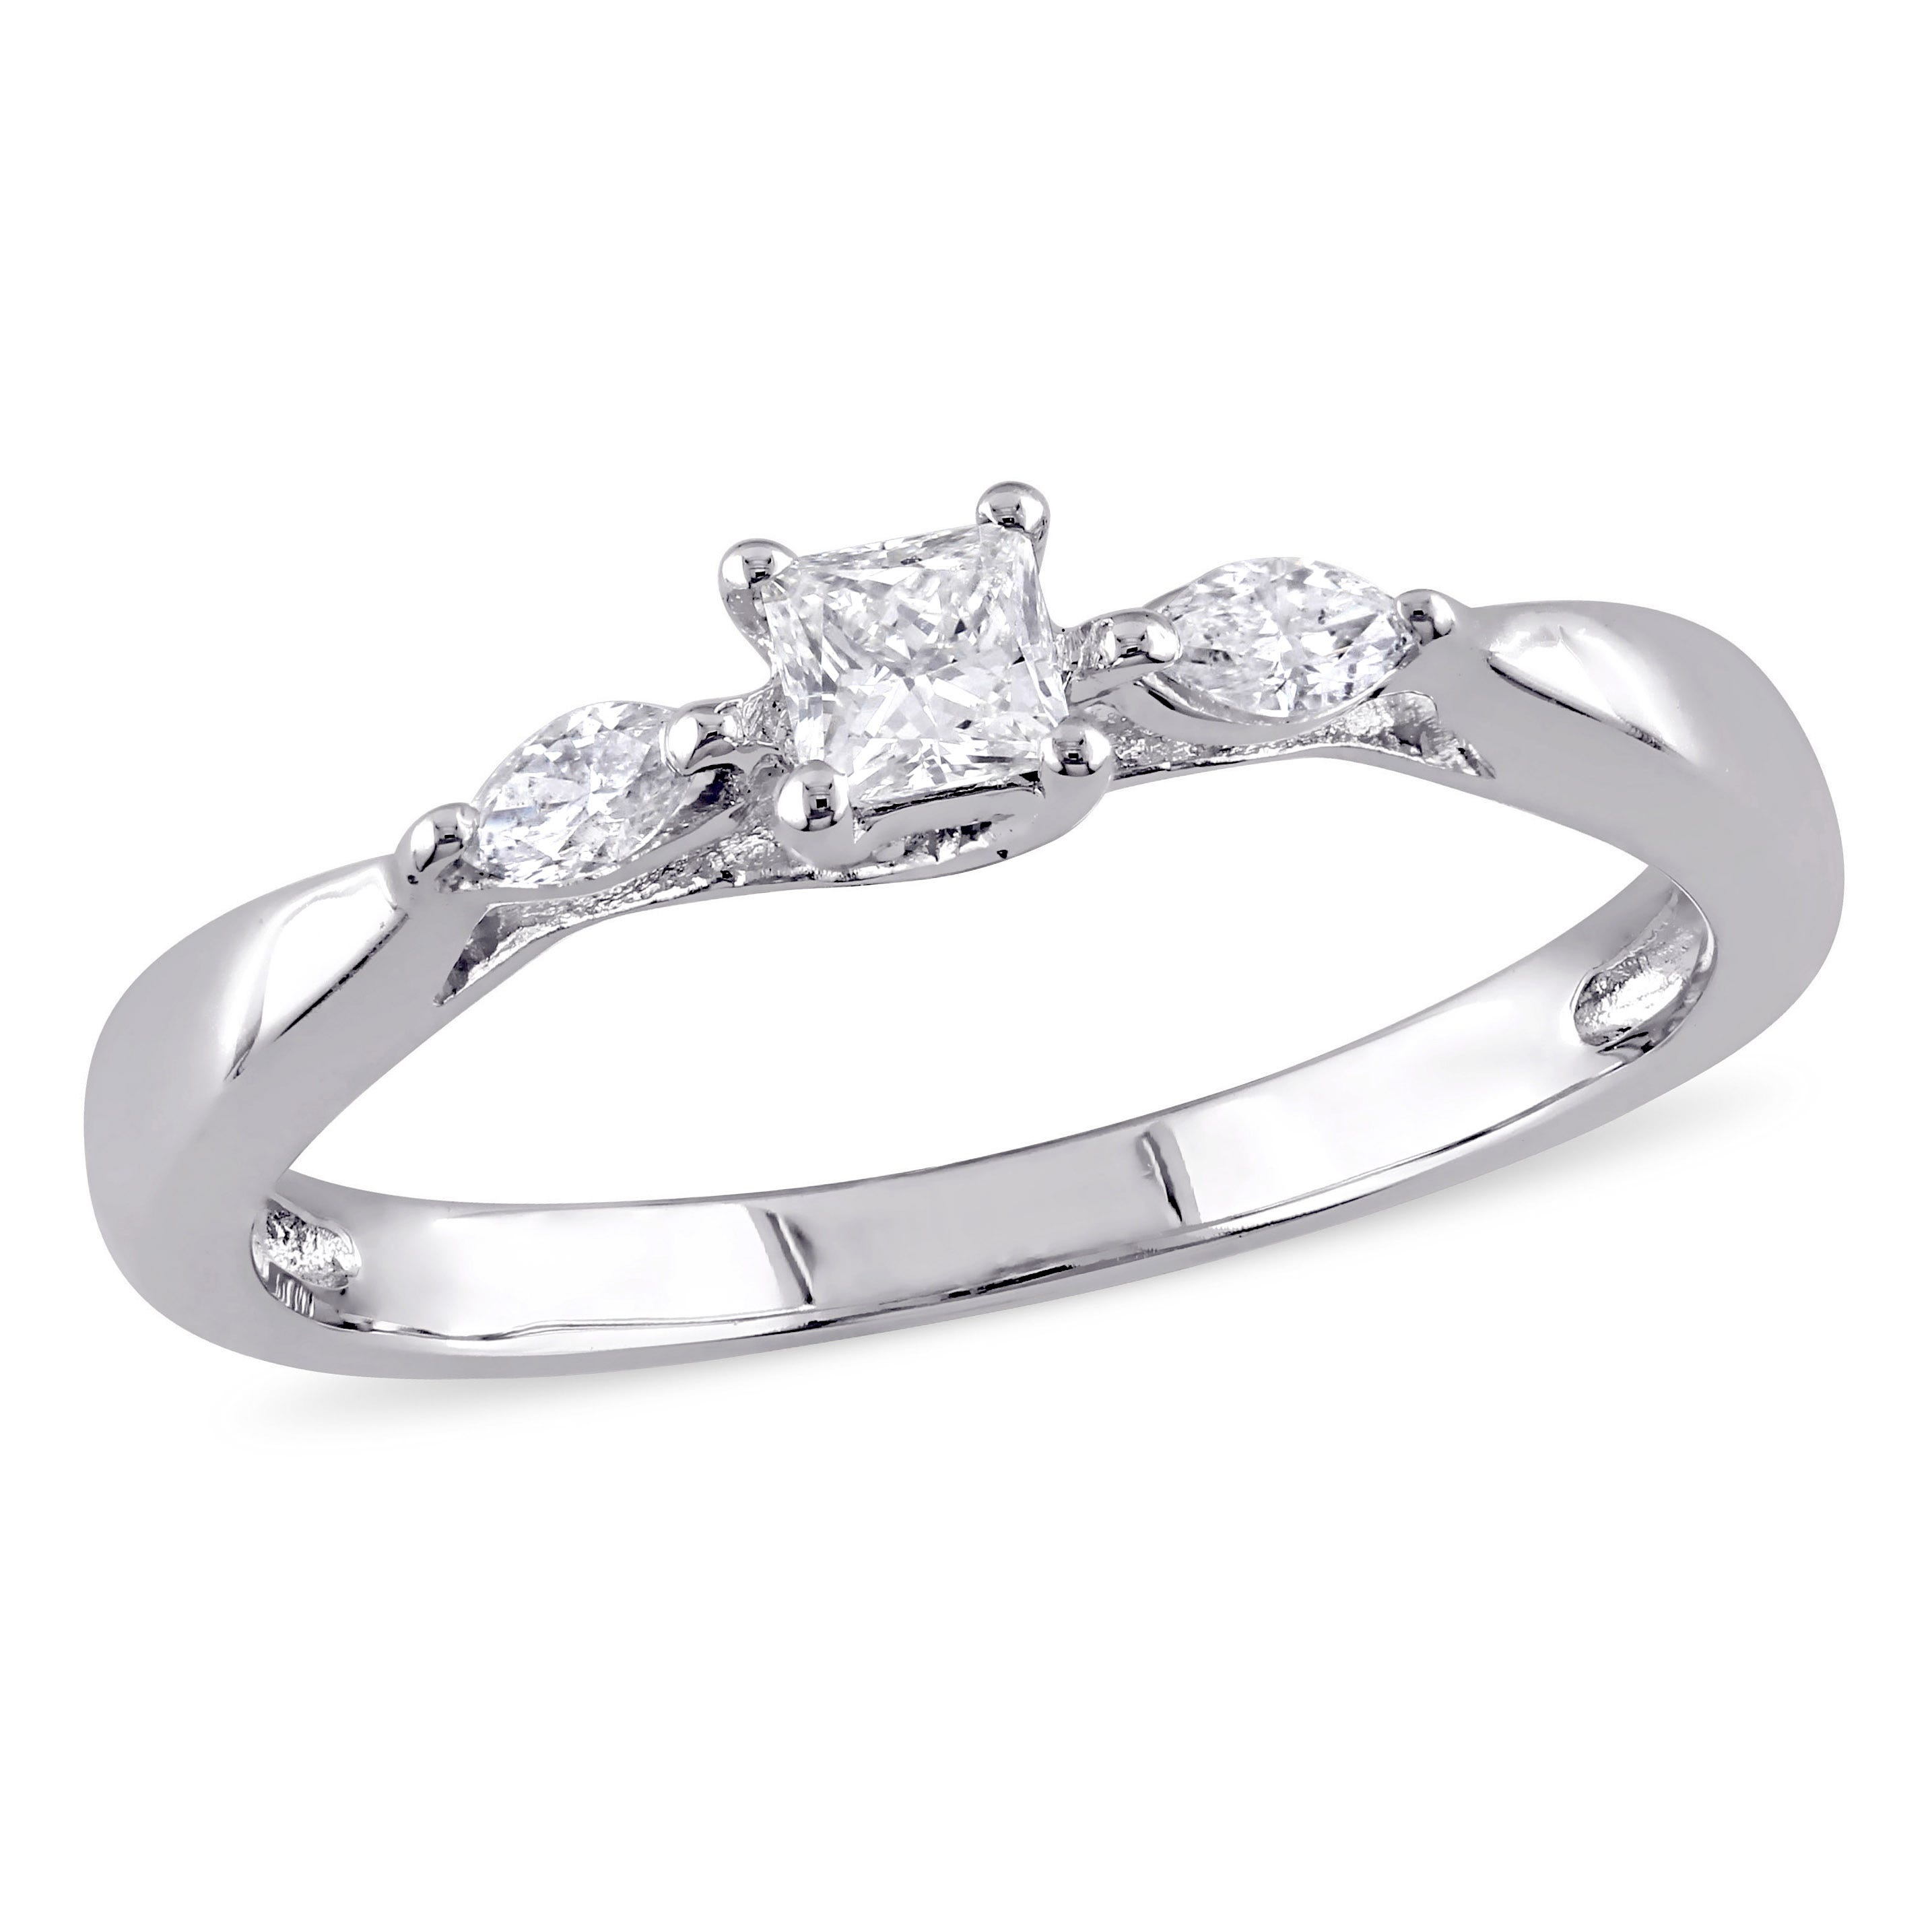 Princess & Marquise Cut Diamond Promise Ring 1/4ctw. in 10k White Gold